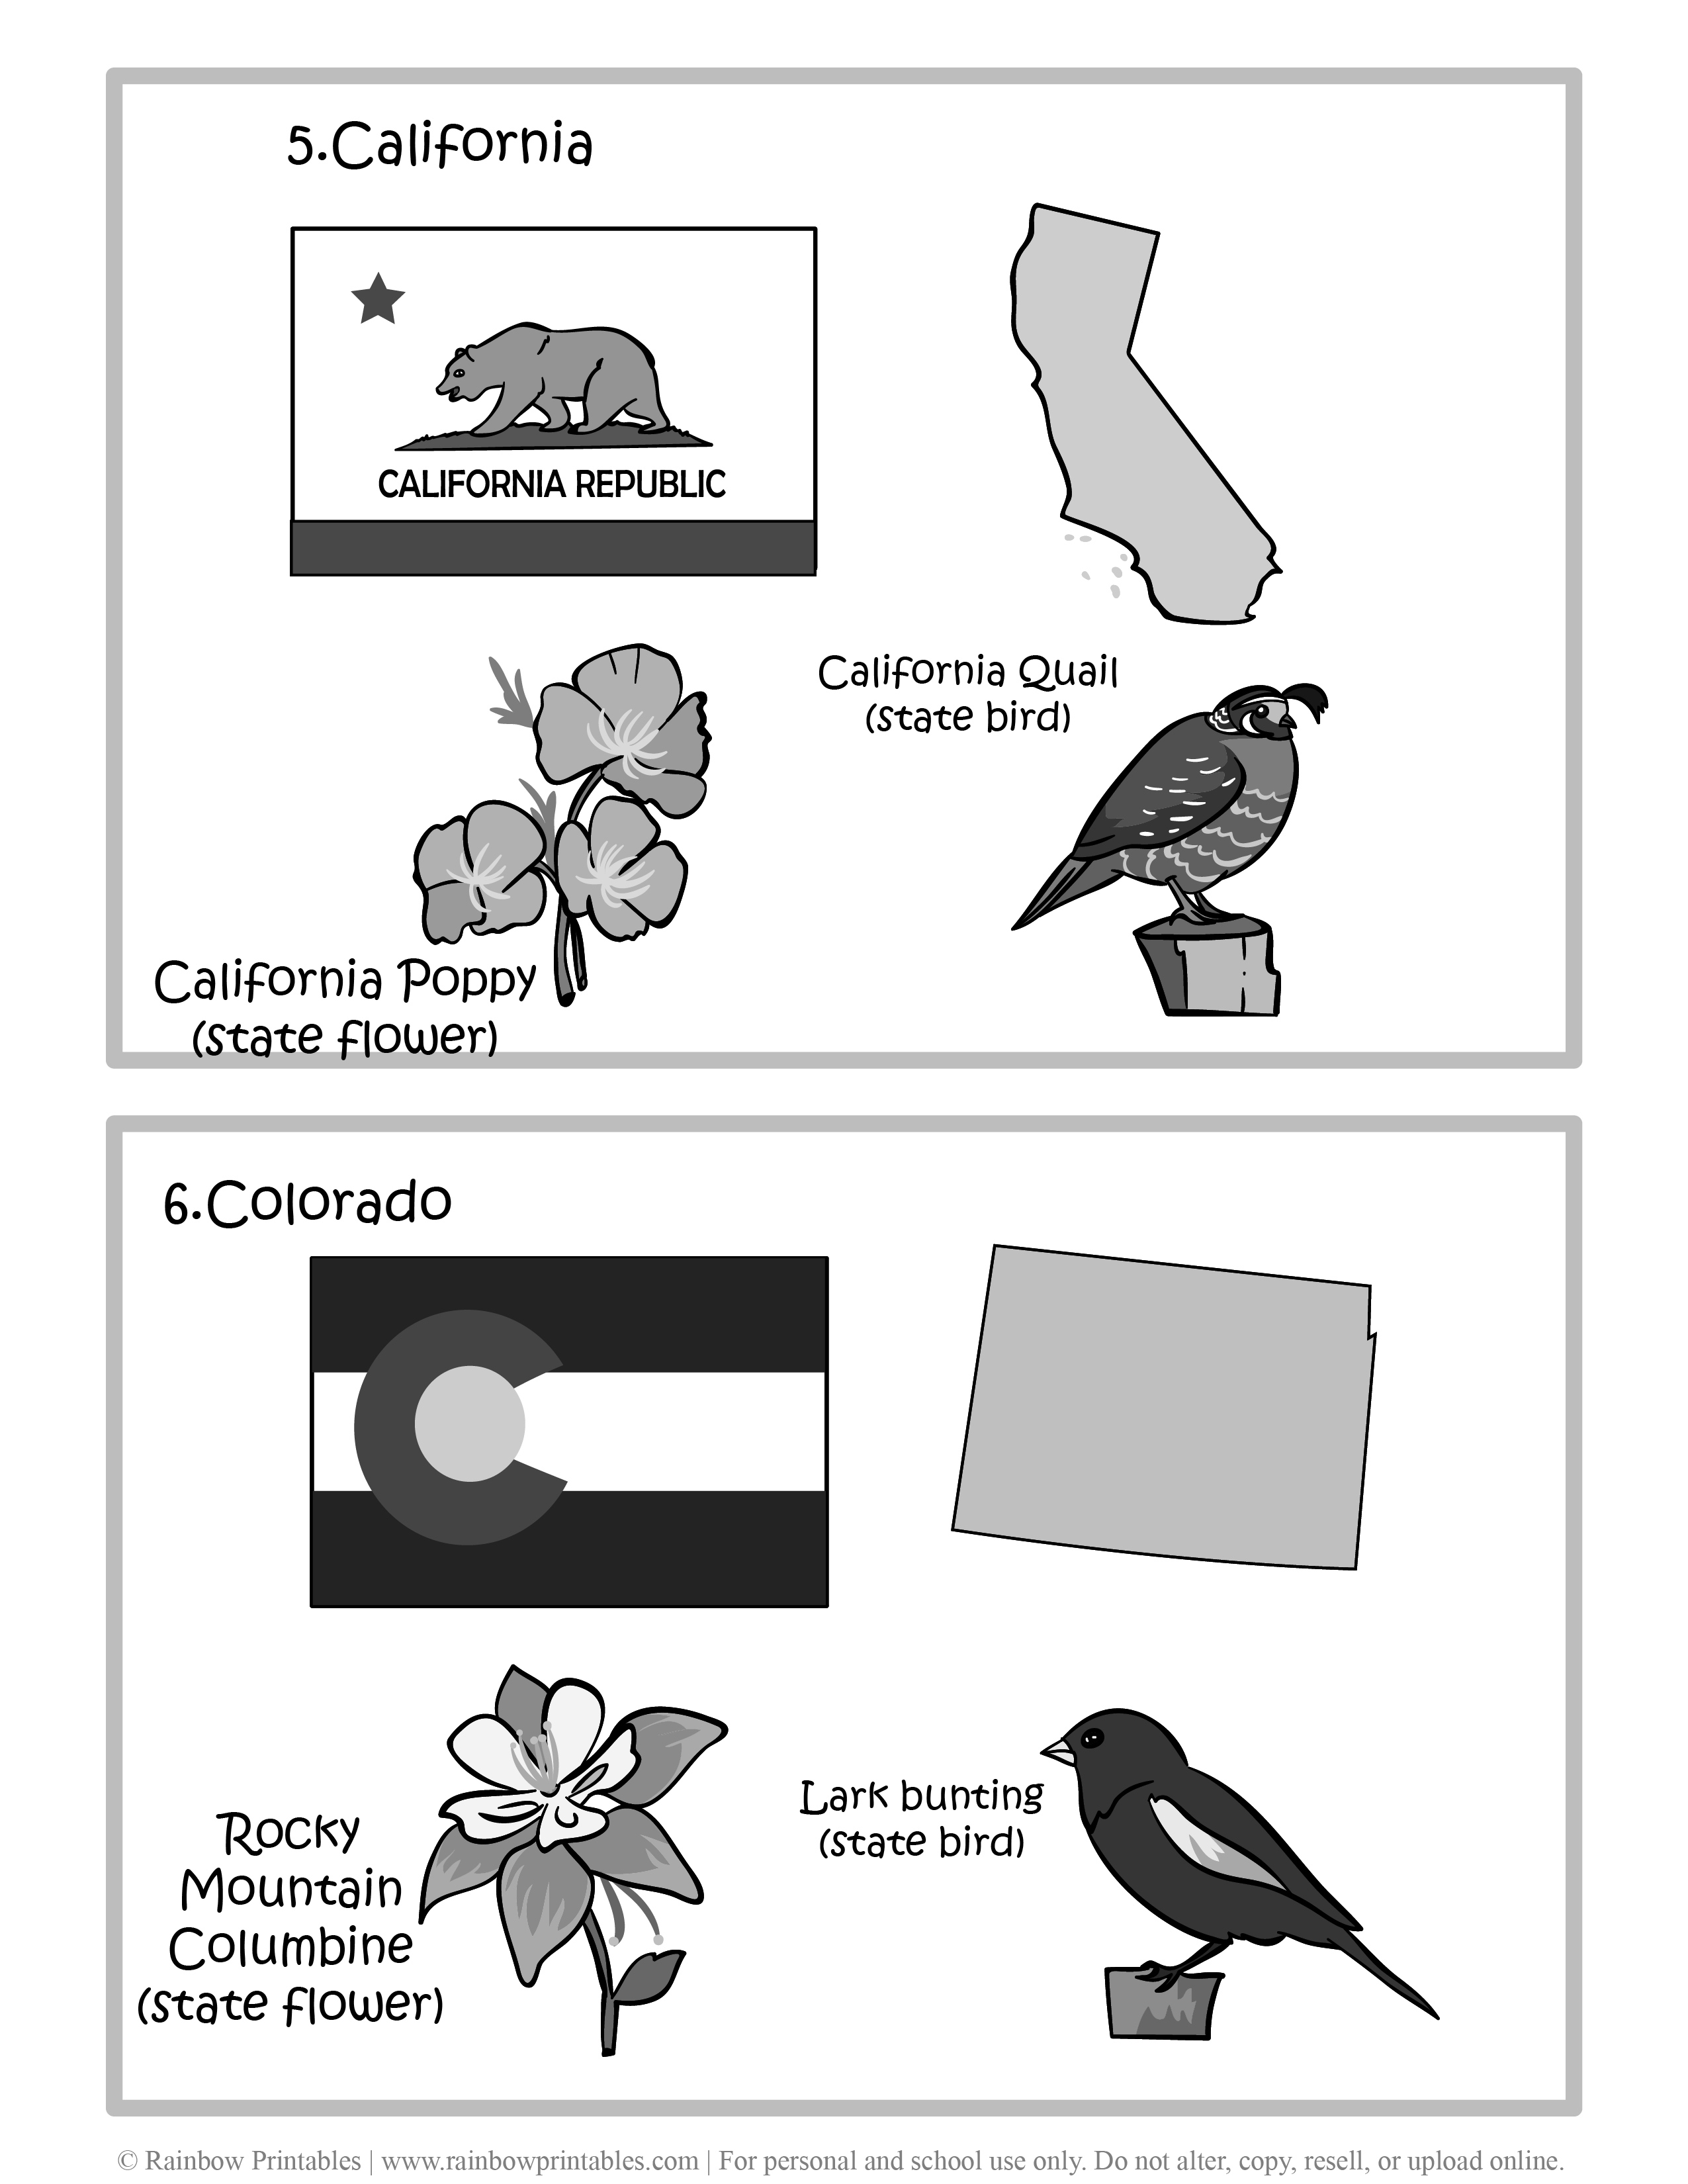 California, Colorado, 50 US State Flag, State Bird, State Flower, United States of America - American States Geography Worksheet Class Lesson Printables Flashcards Black White